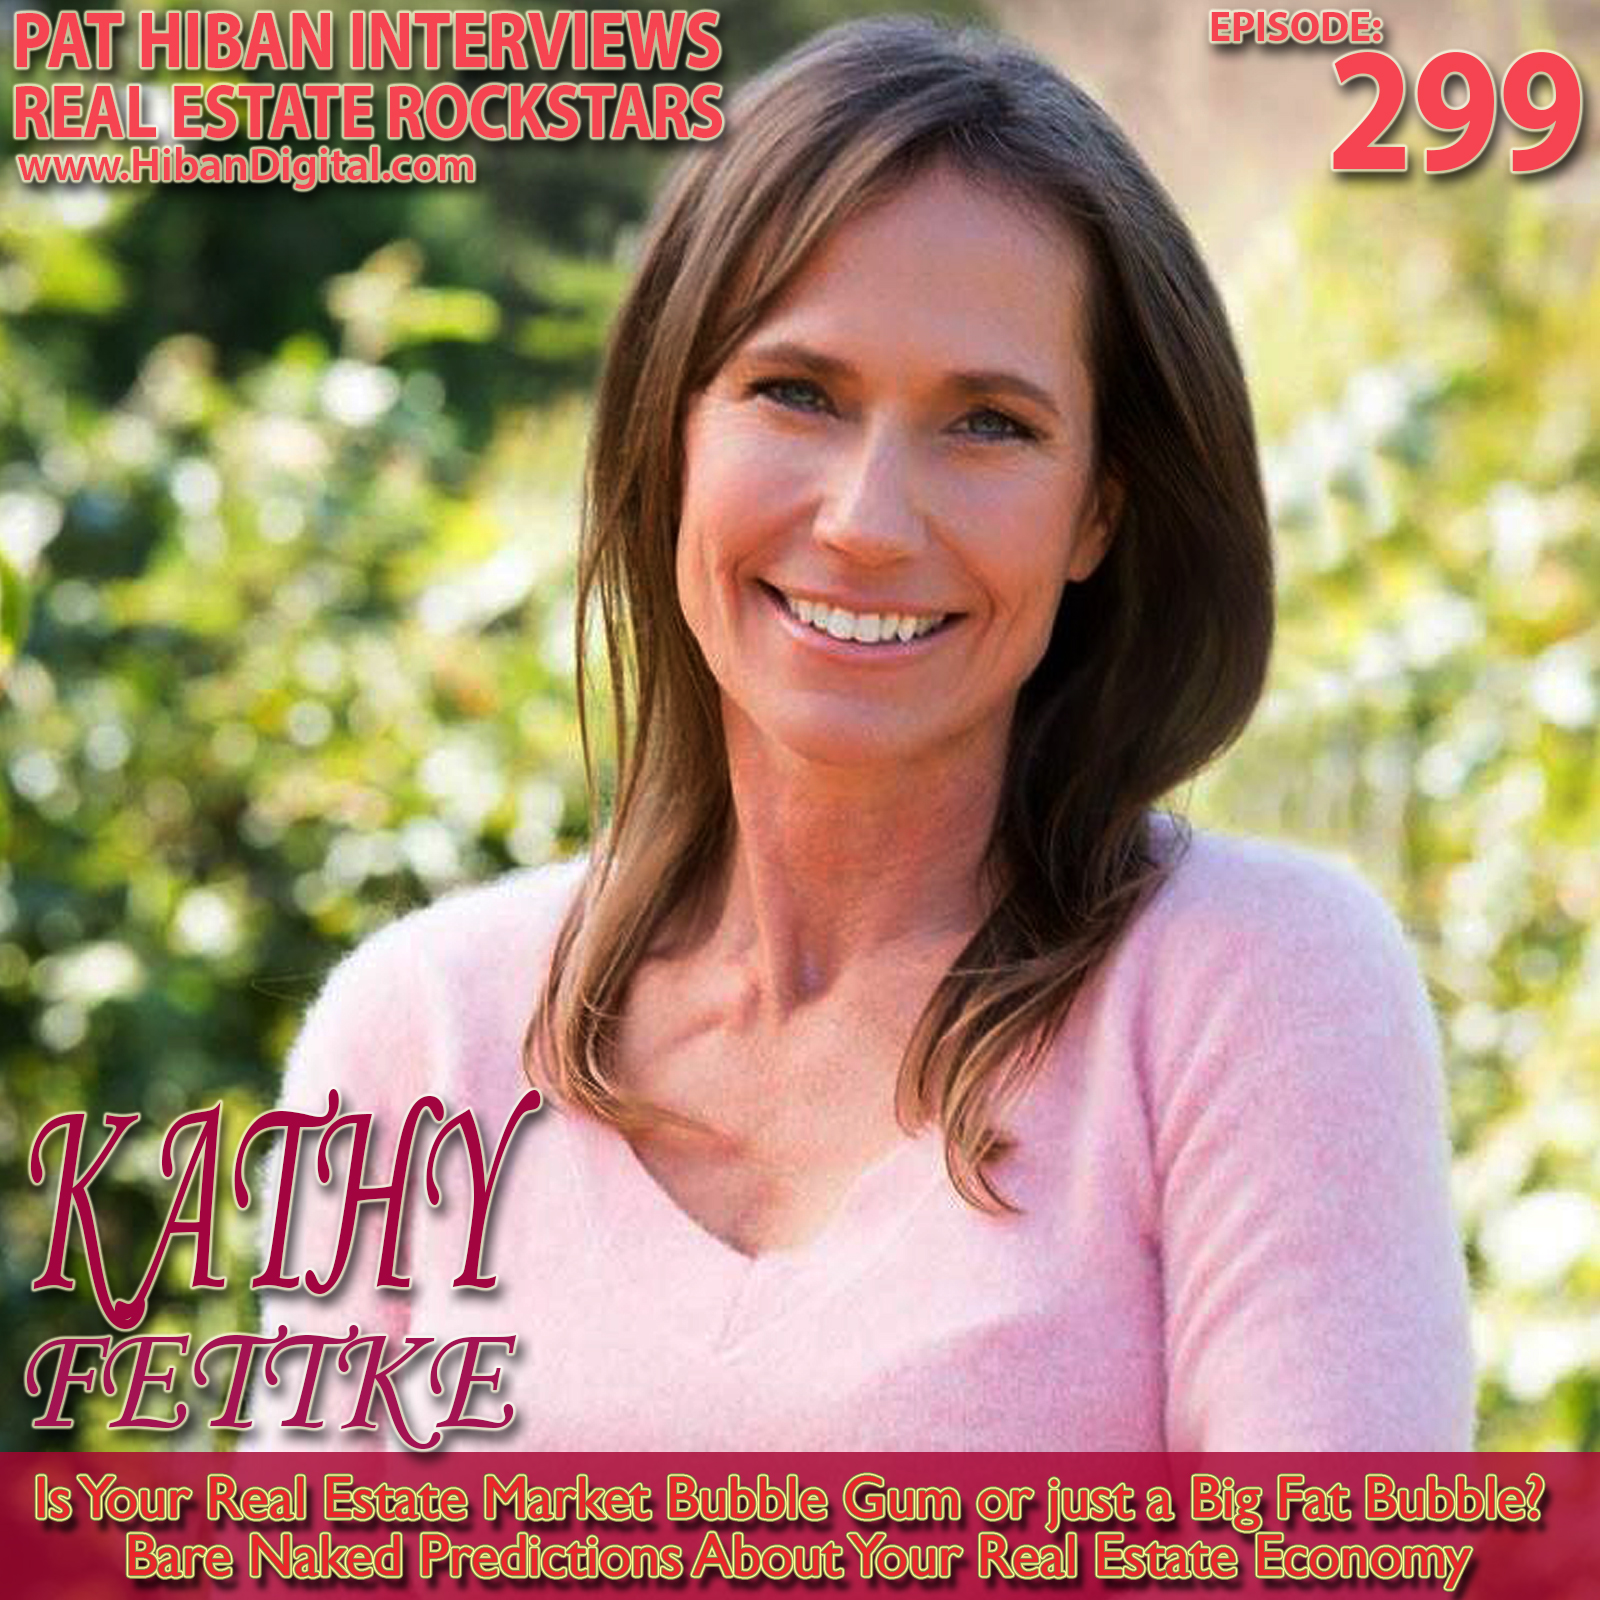 299: Kathy Fettke: Is Your Real Estate Market Bubble Gum or just a Big Fat  Bubble? Bare Naked Predictions About Your Real Estate Economy